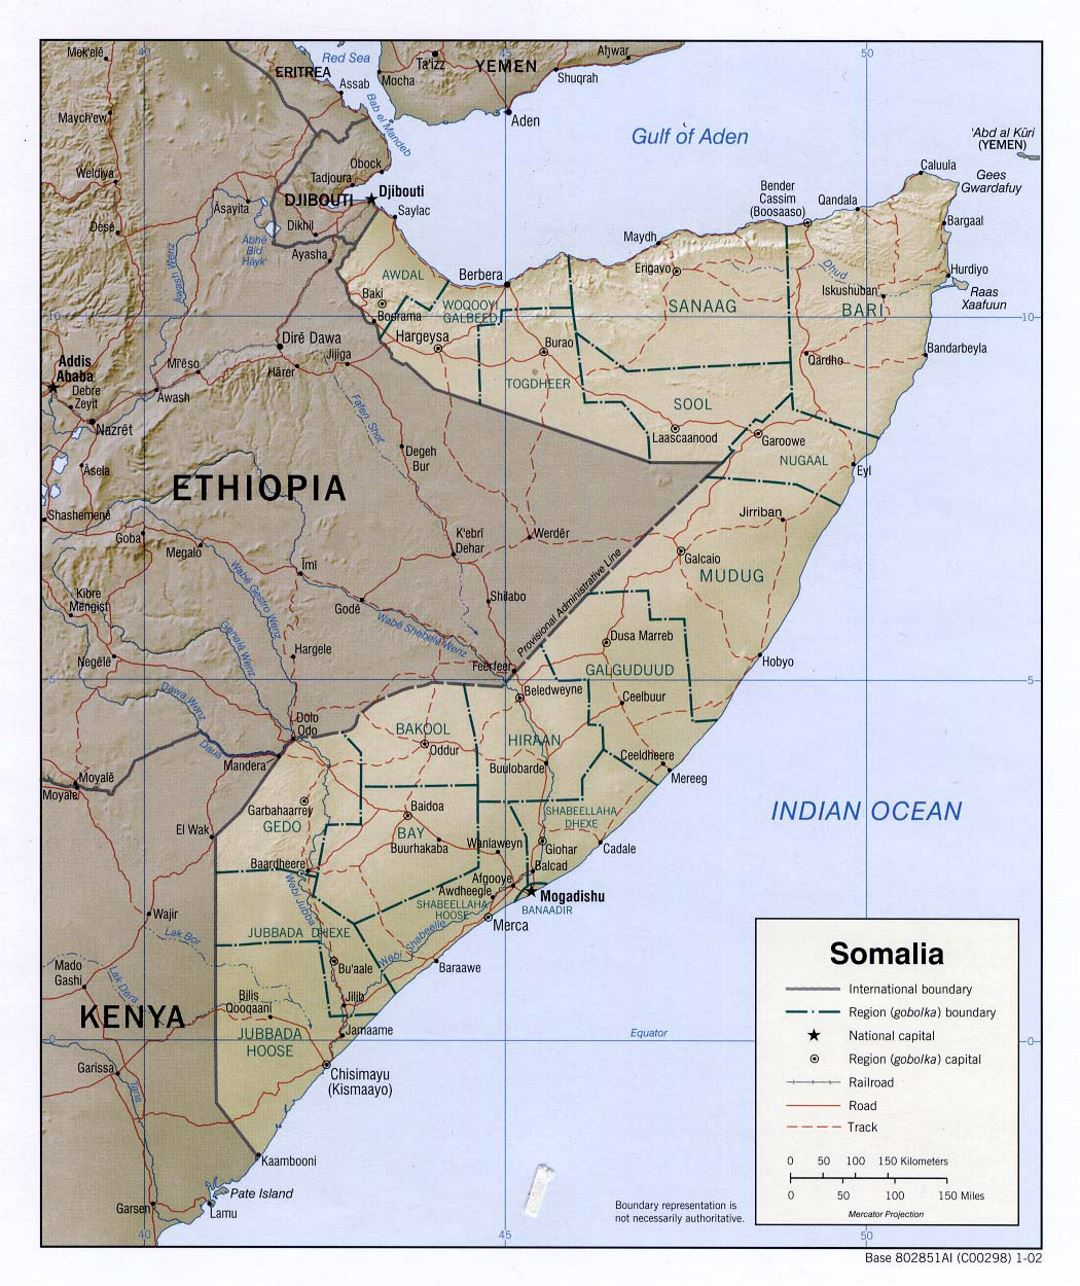 Detailed political and administrative map of Somalia with relief, roads, railroads and major cities - 2002